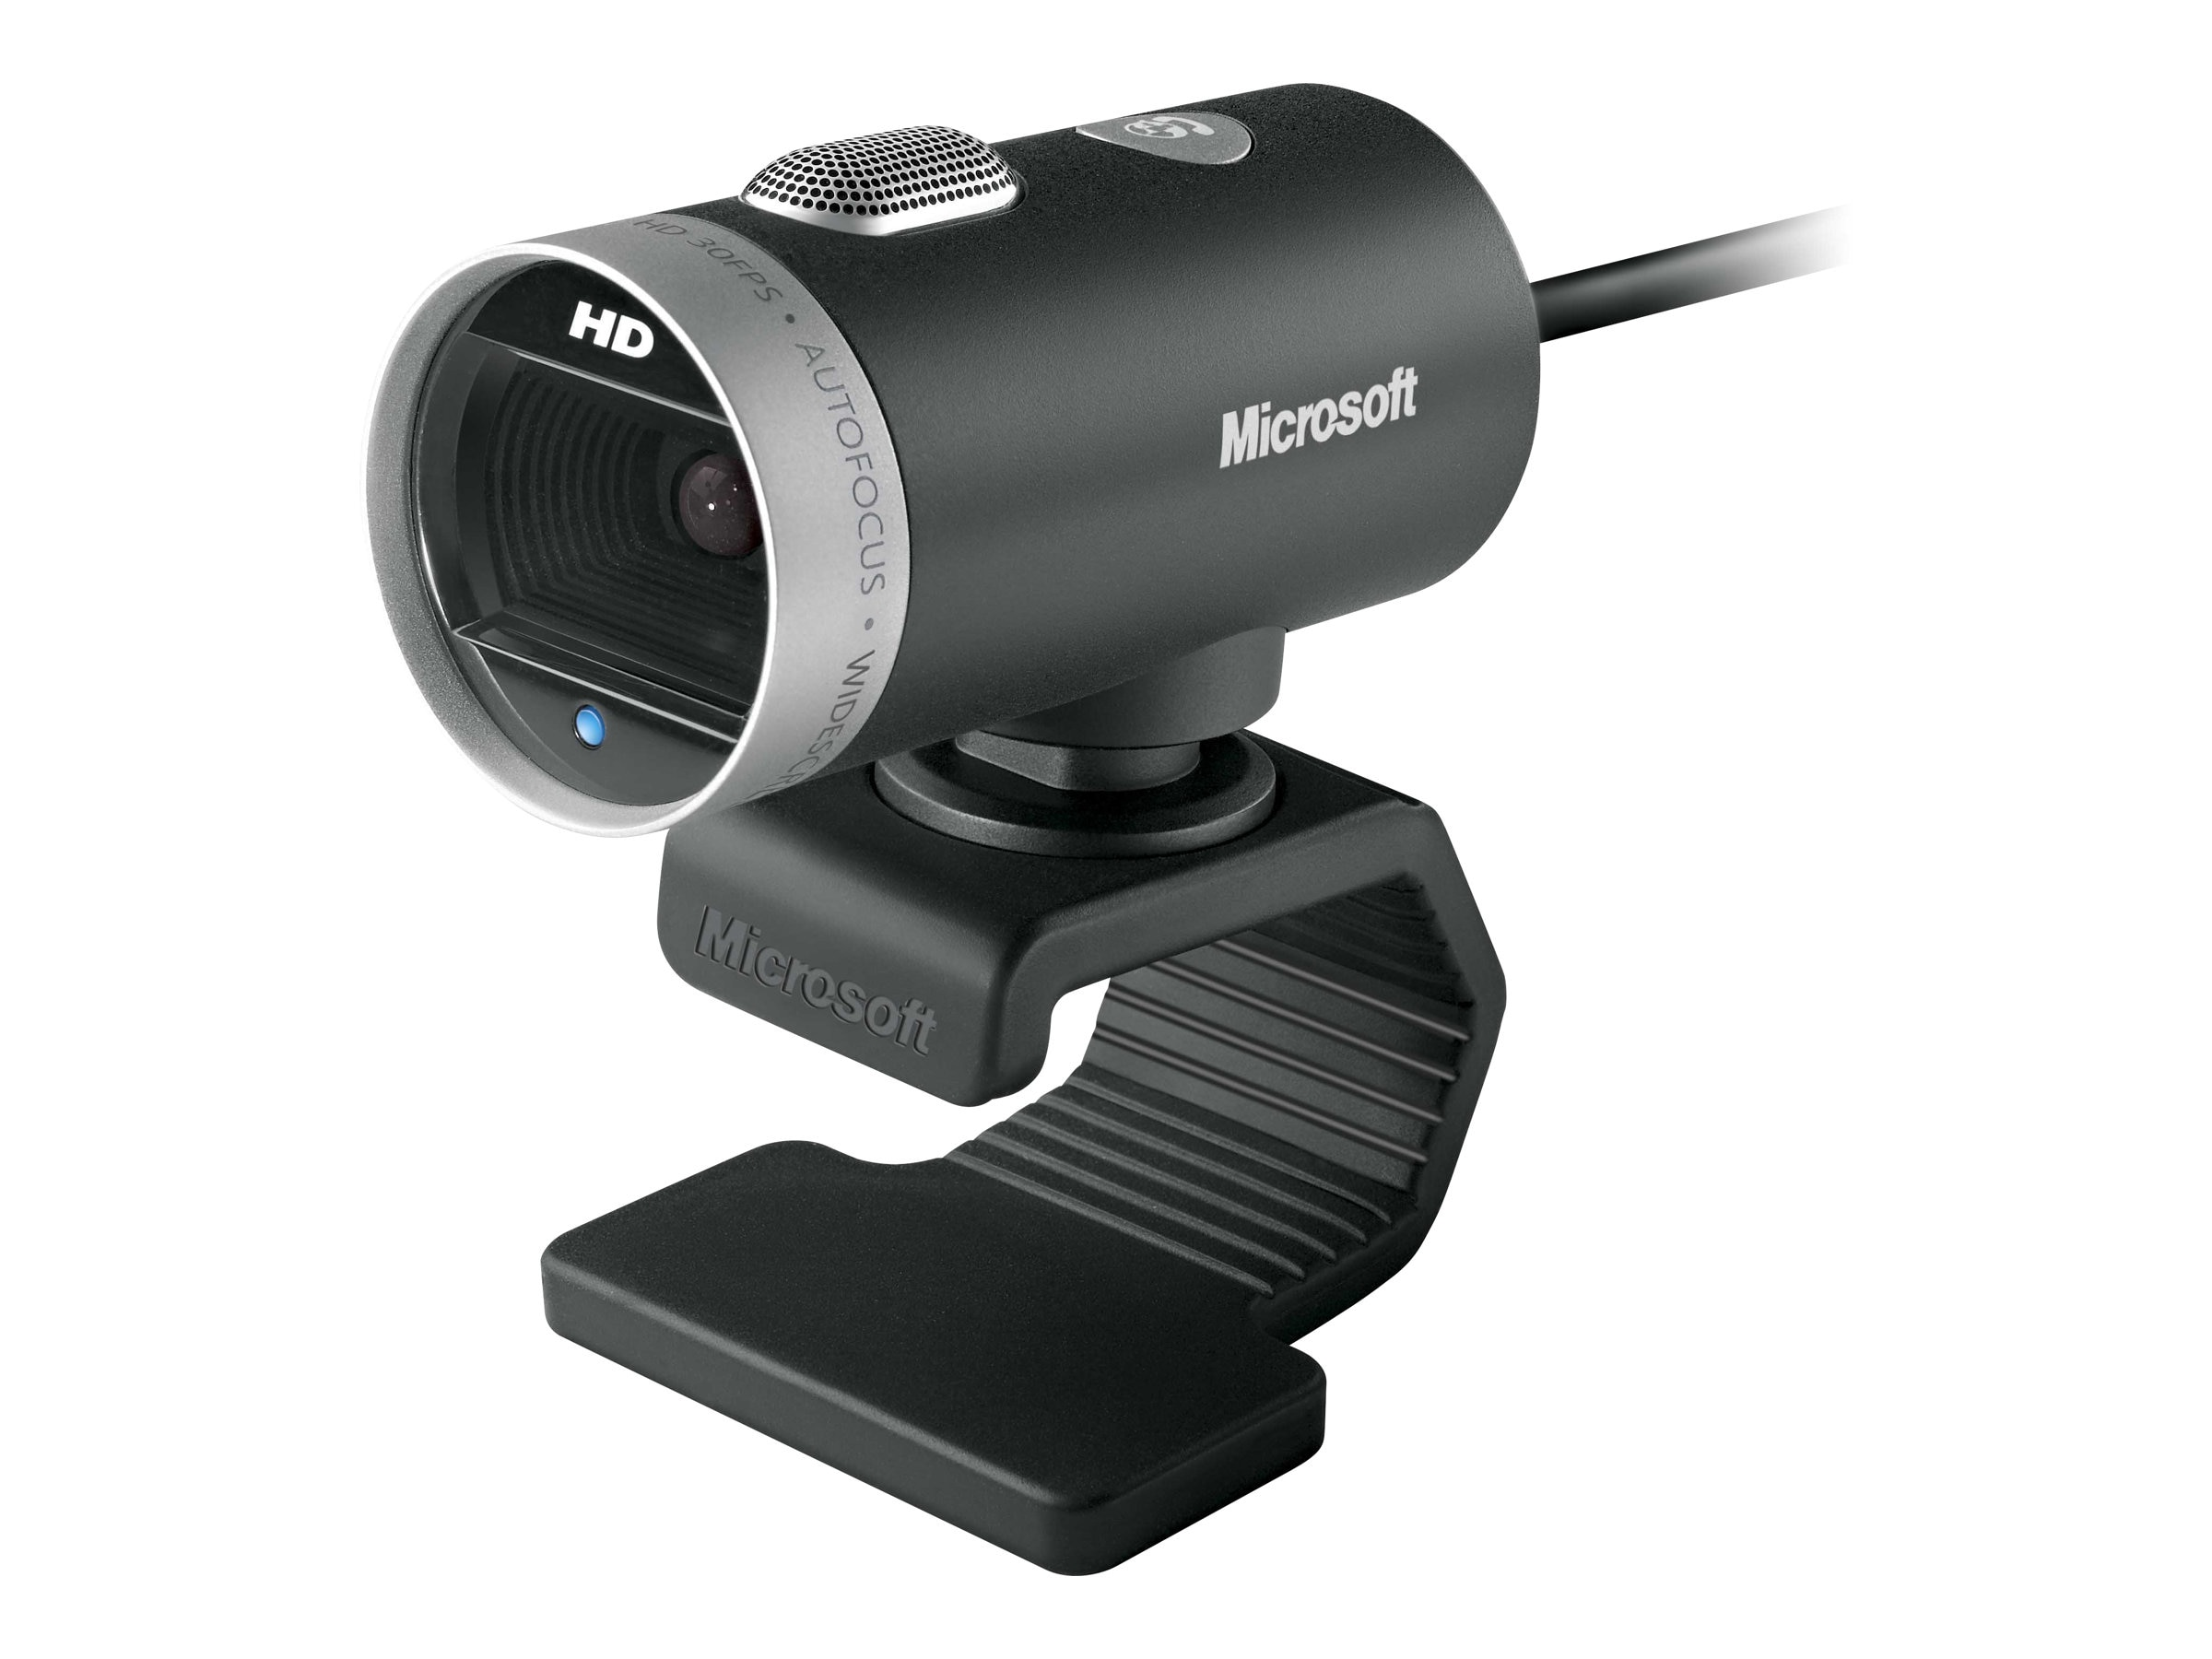 Microsoft Lifecam Cinema, USB, Windows, H5D-00013